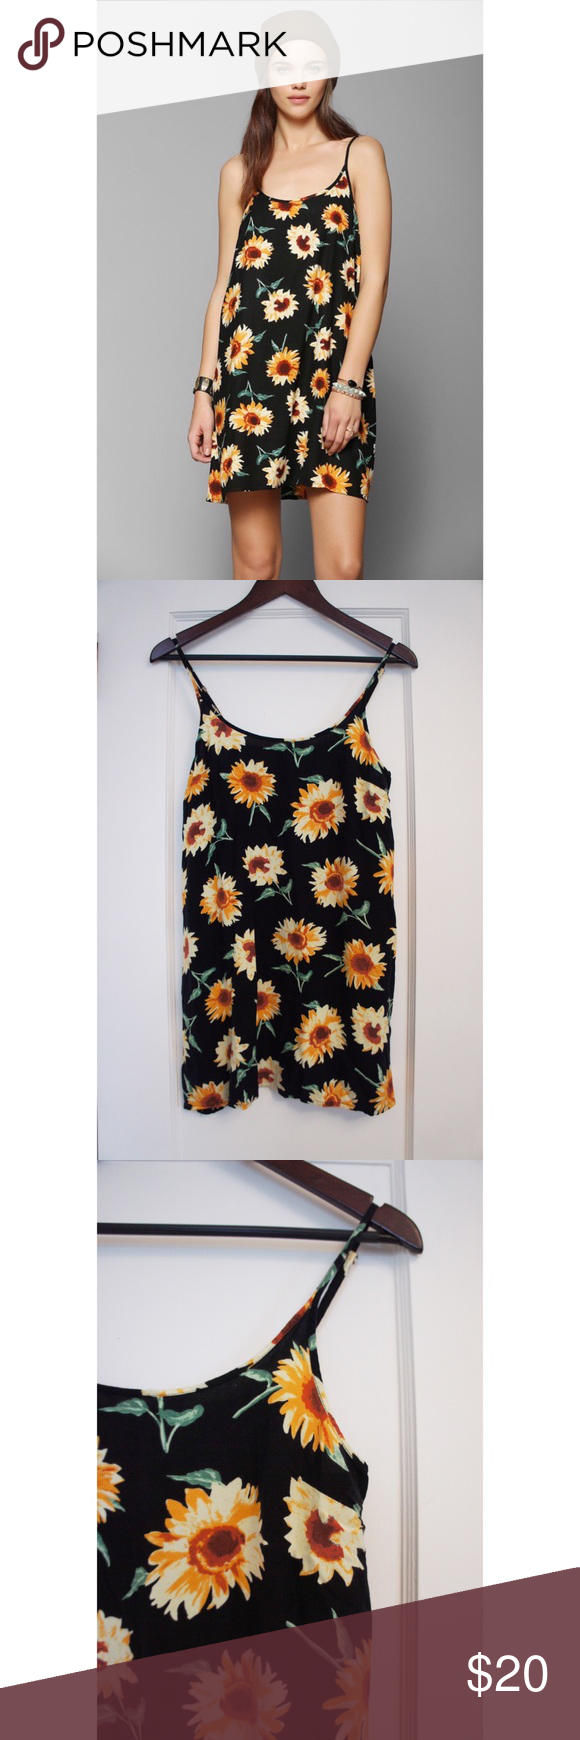 4e40cd5256d9 Urban Outfitters Kimchi Blue Sunflower Slip Dress Super cute slip dress by  Kimchi and Blue from Urban Outfitters in a size small. In great condition.